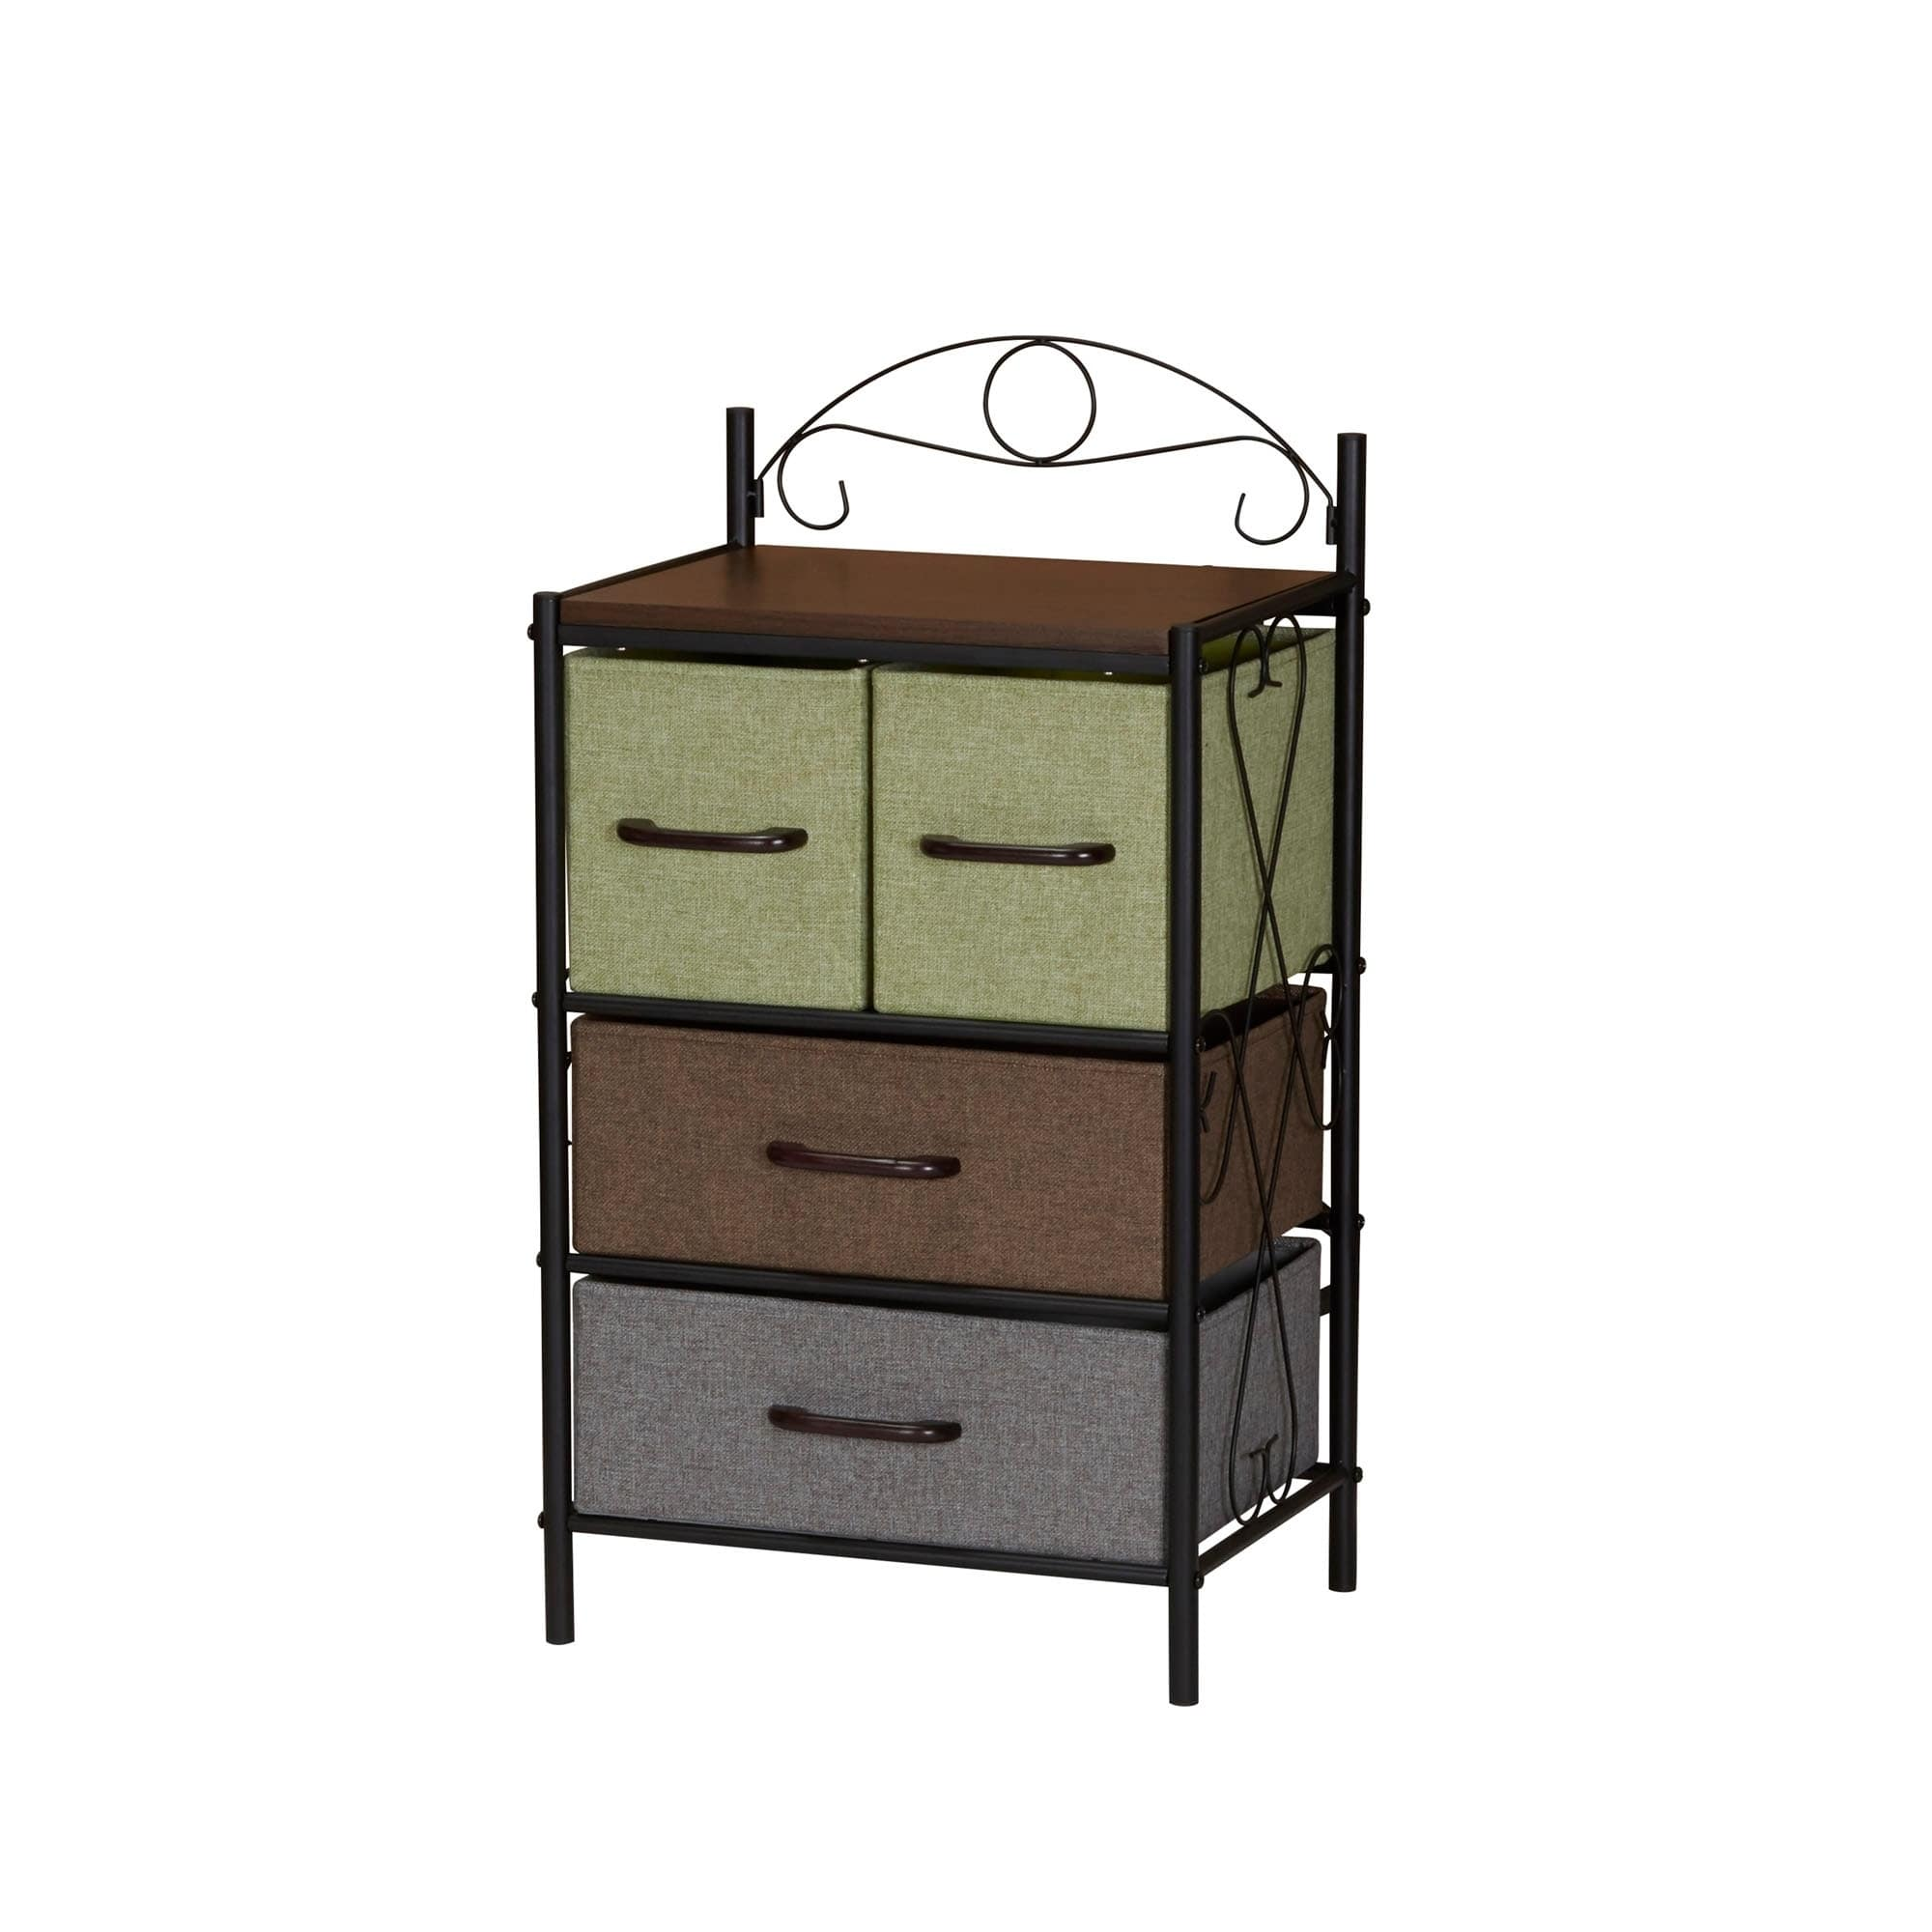 accent tables top decor furniture victorian table household essentials end with storage drawers see more hot espresso side black bedroom tall round kitchen long narrow small lamp